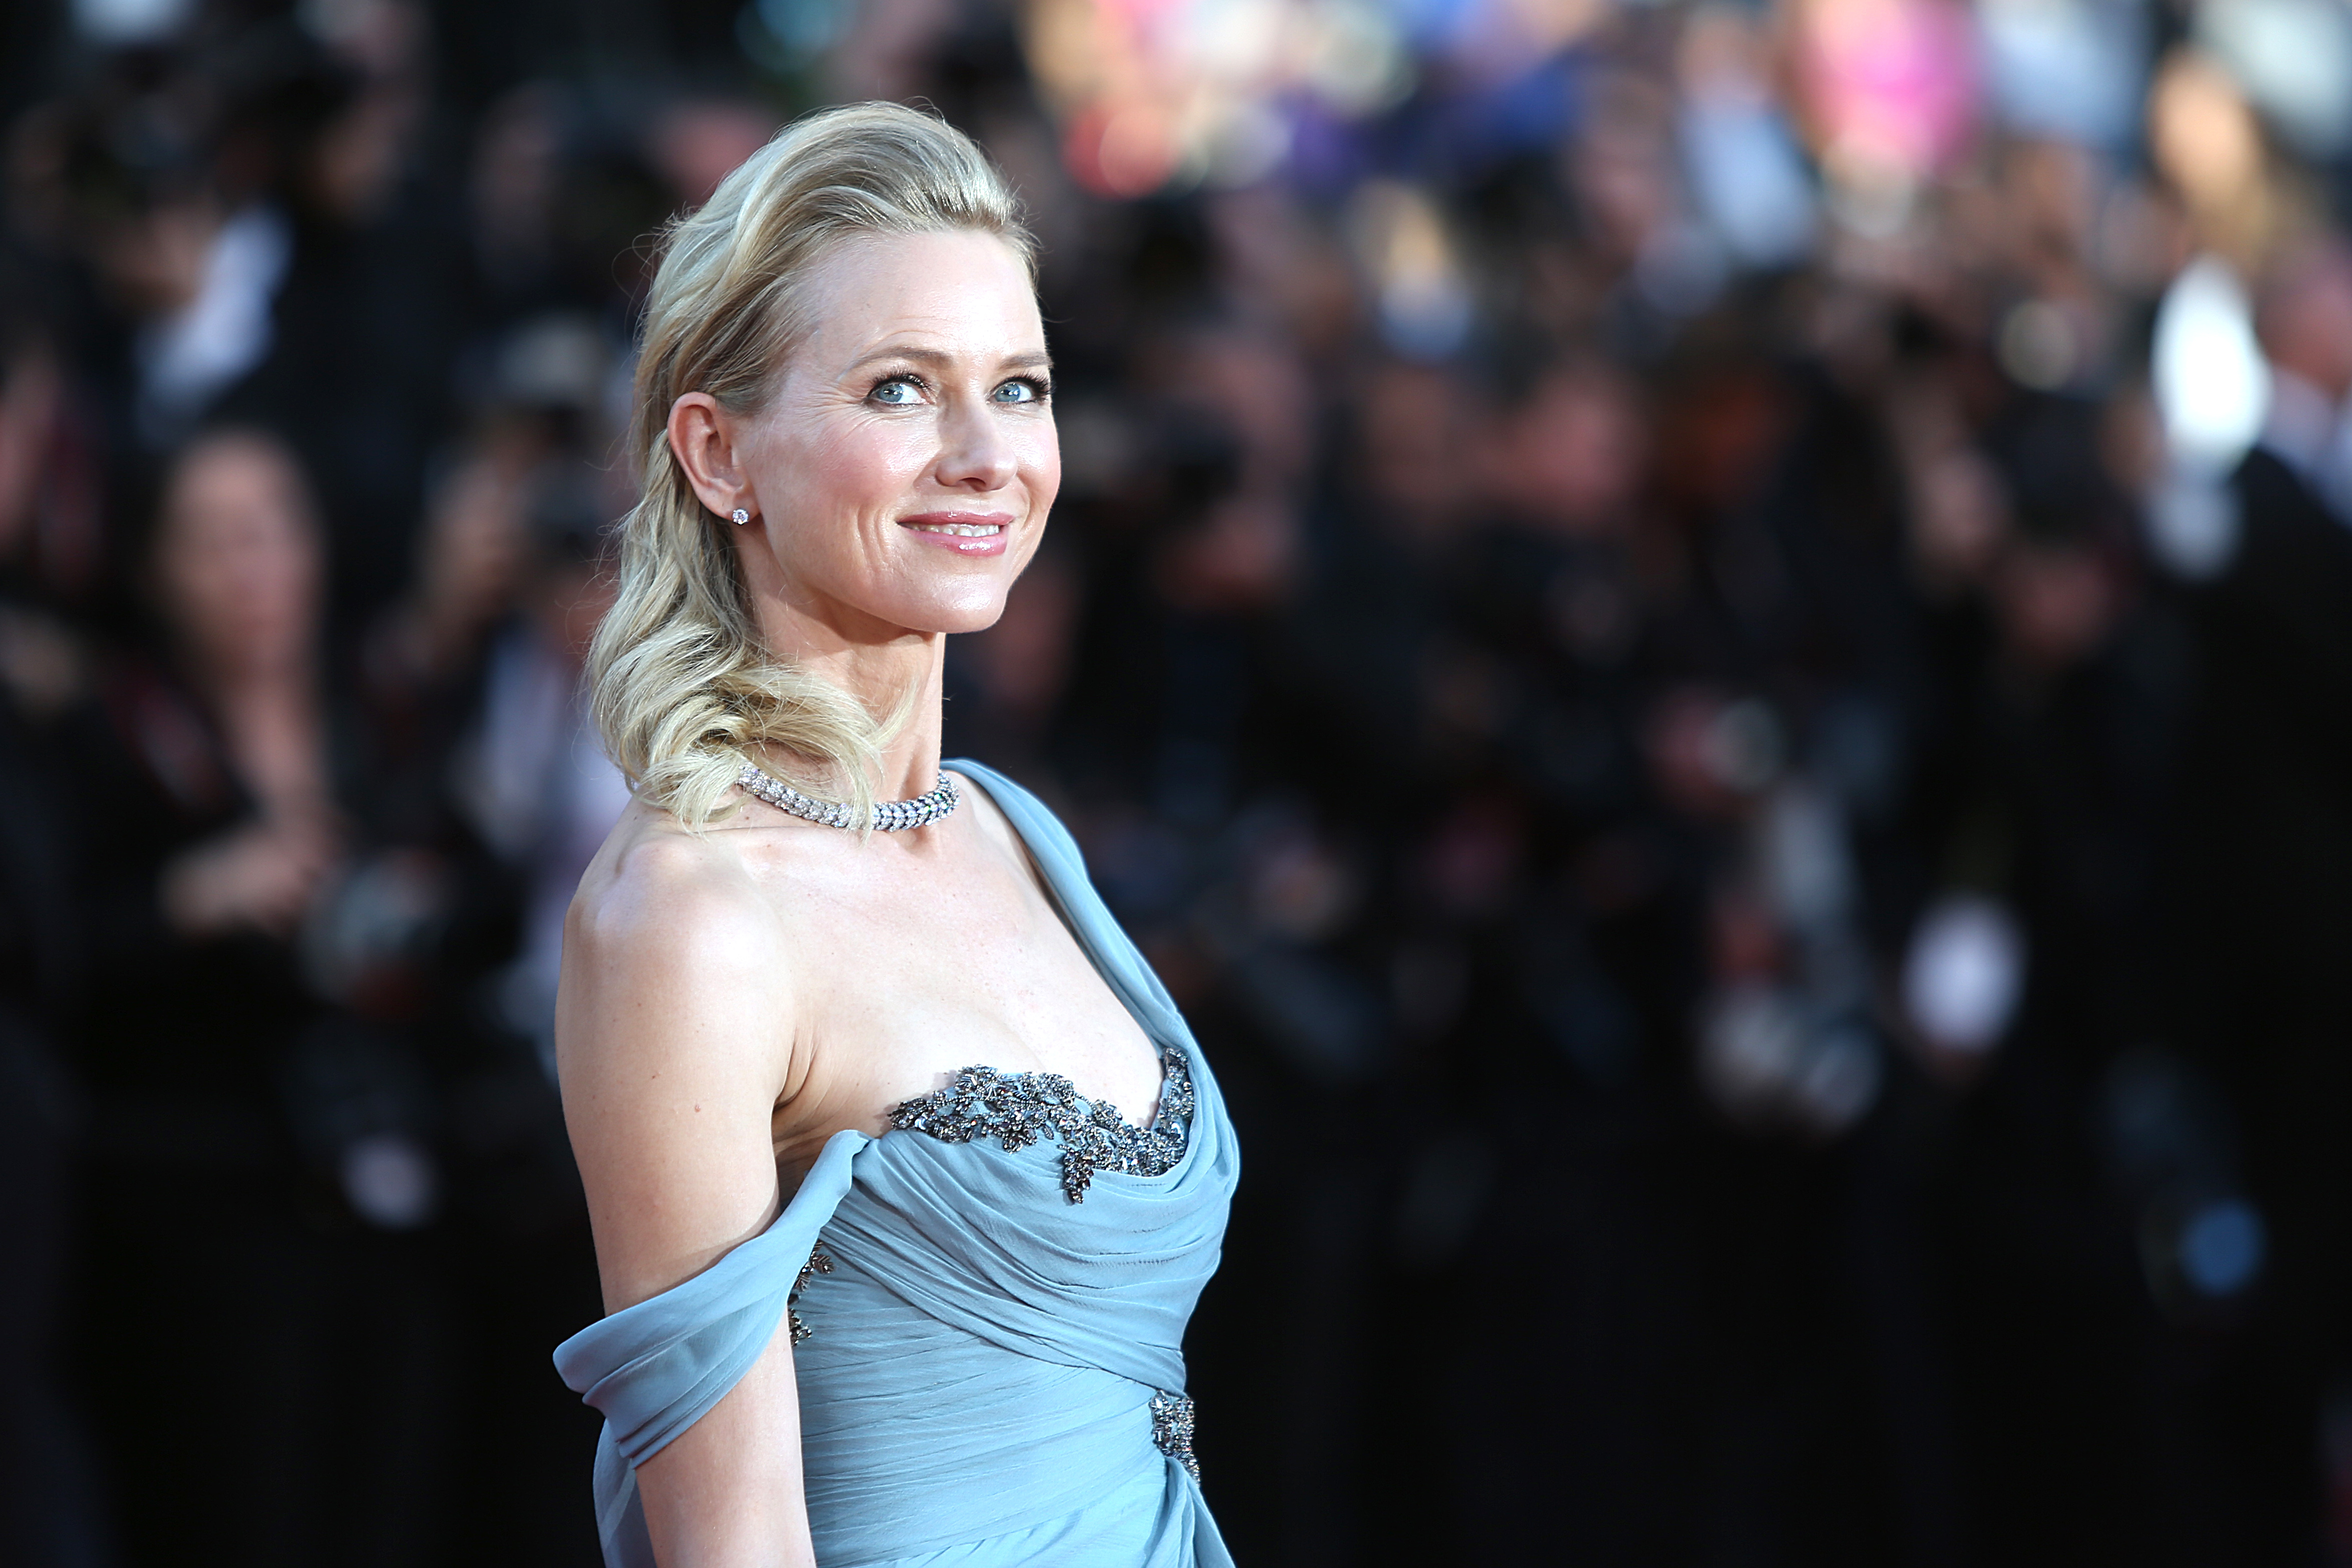 Actress Naomi Watts poses at the screening of How To Train Your Dragon 2 at the 67th international film festival, Cannes, southern France, May 16, 2014.